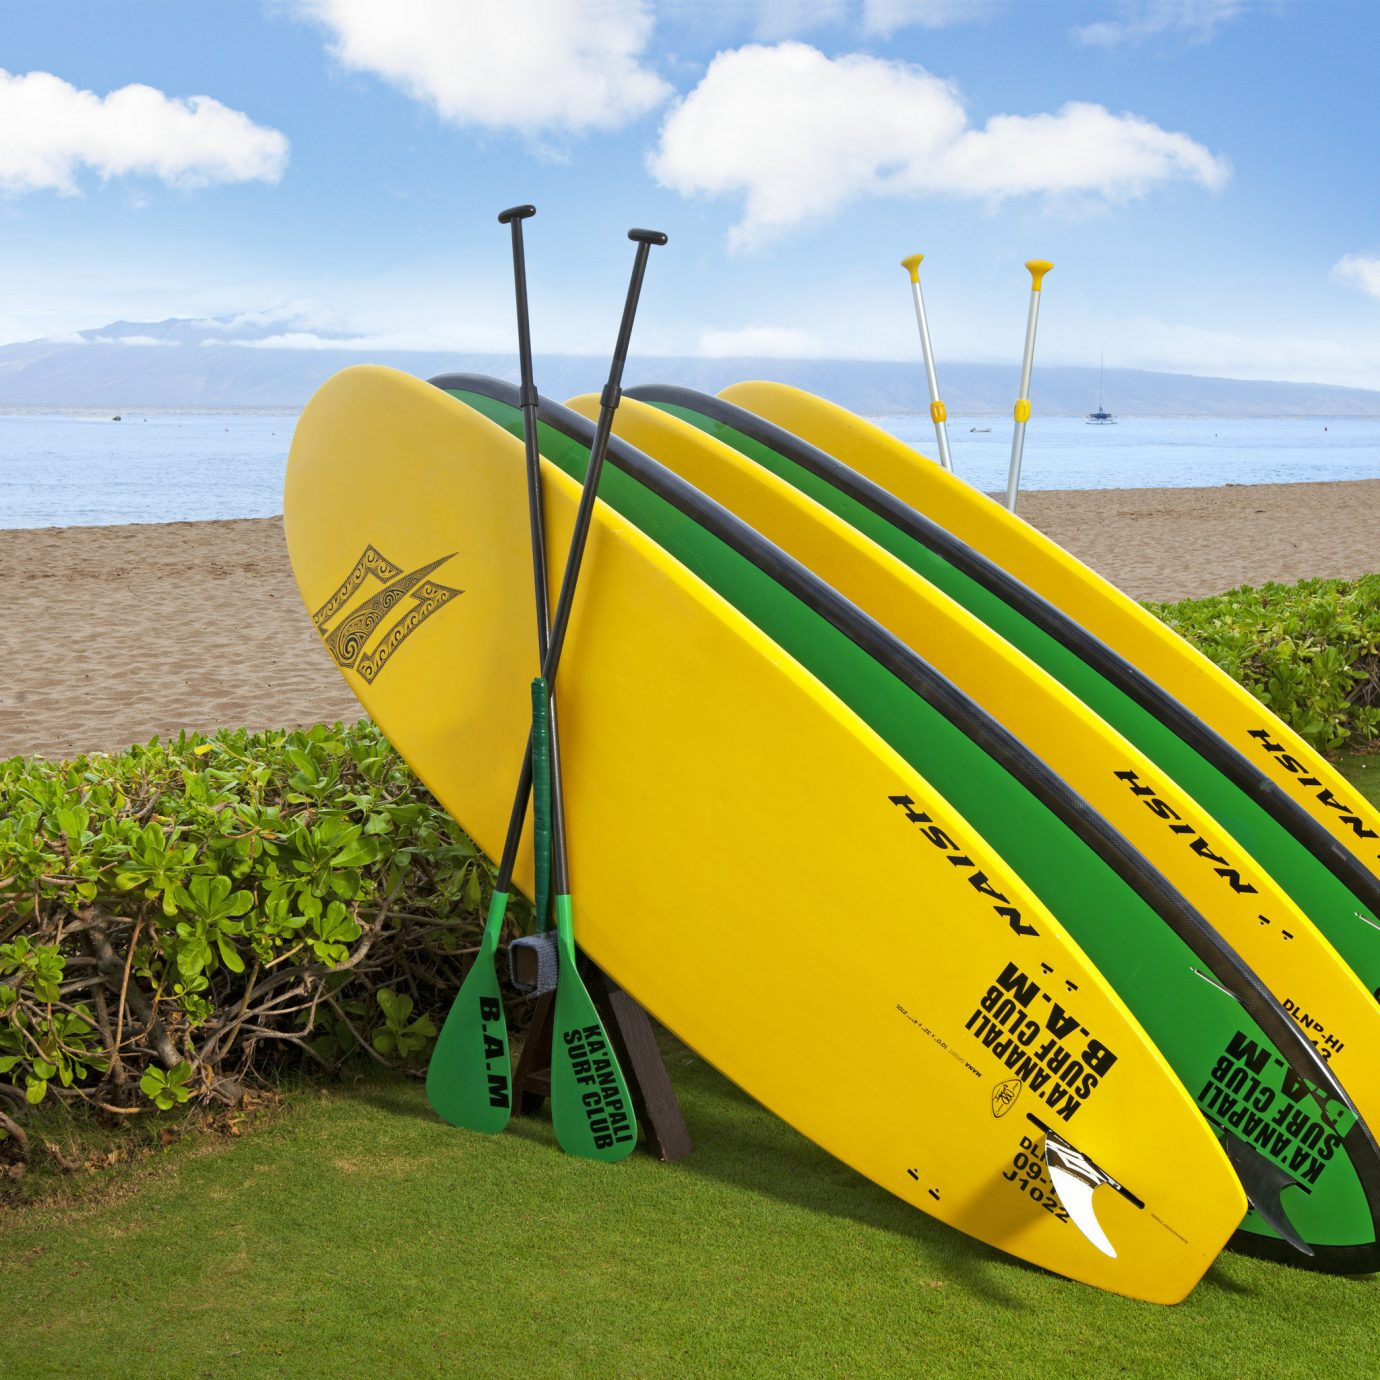 sky surfing grass umbrella green yellow Beach board surfboard accessory surfing equipment and supplies sports atmosphere of earth vehicle wind paddle Boat Sea sports equipment shore